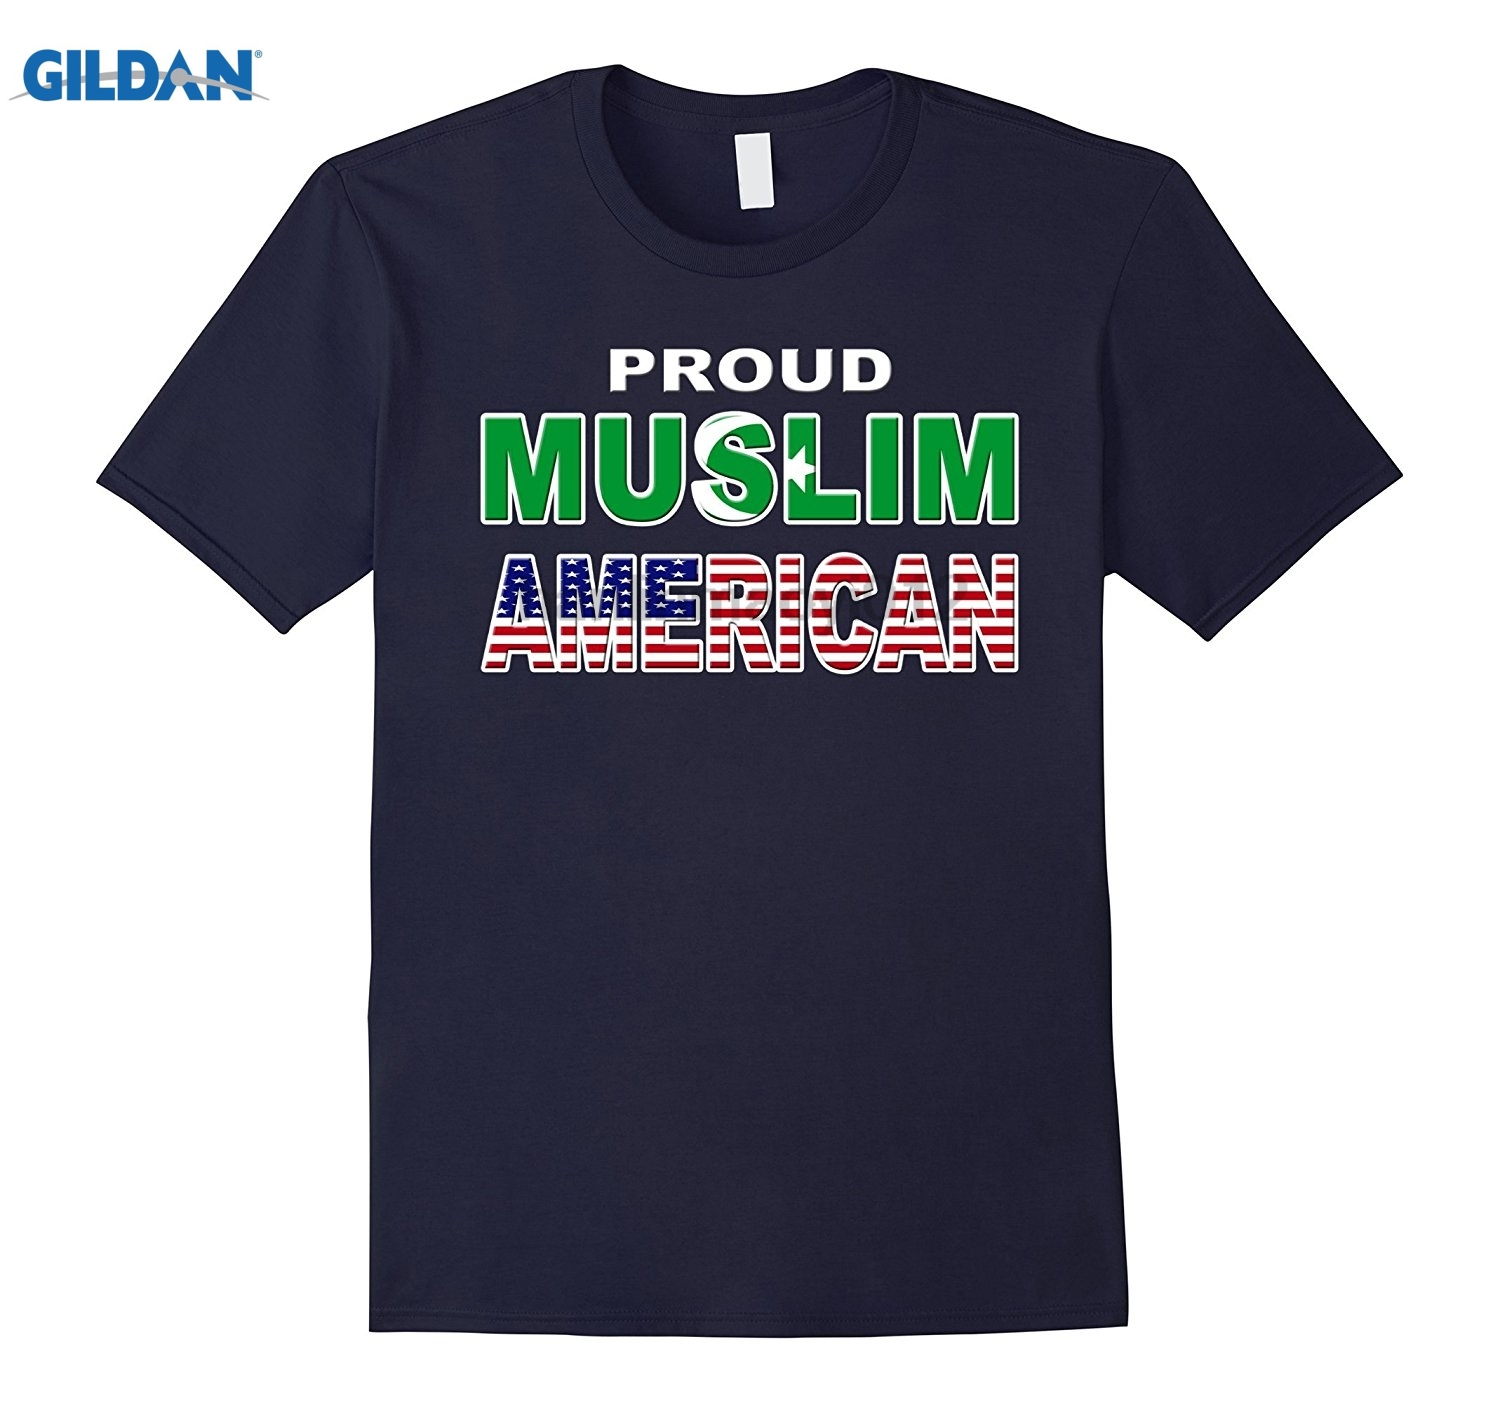 GILDAN Proud Muslim American Tee Supports Religious Diversity glasses Womens T-shirt